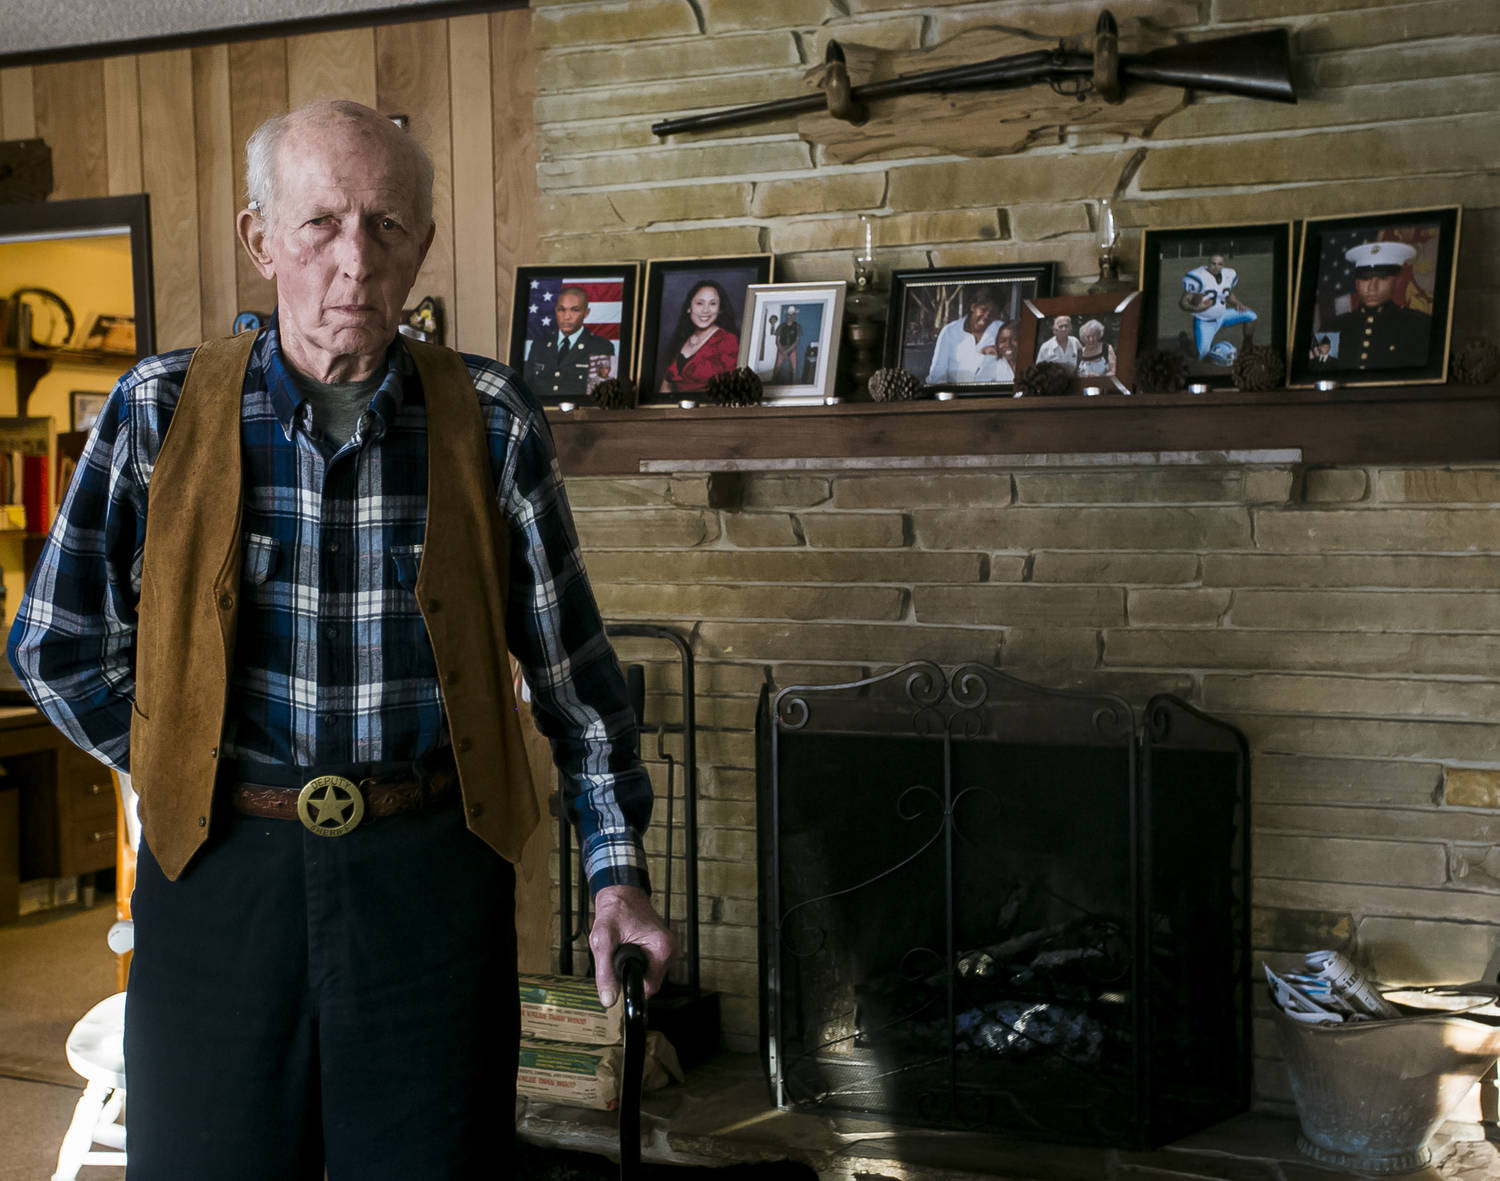 An older man, steadying himself with a cane, stands in front of a hearth, with framed photos of people on the mantle. Above the fireplace is hung a rifle. He is wearing a flannel shirt, leather vest, and a brass belt buckle with a sheriff's star.